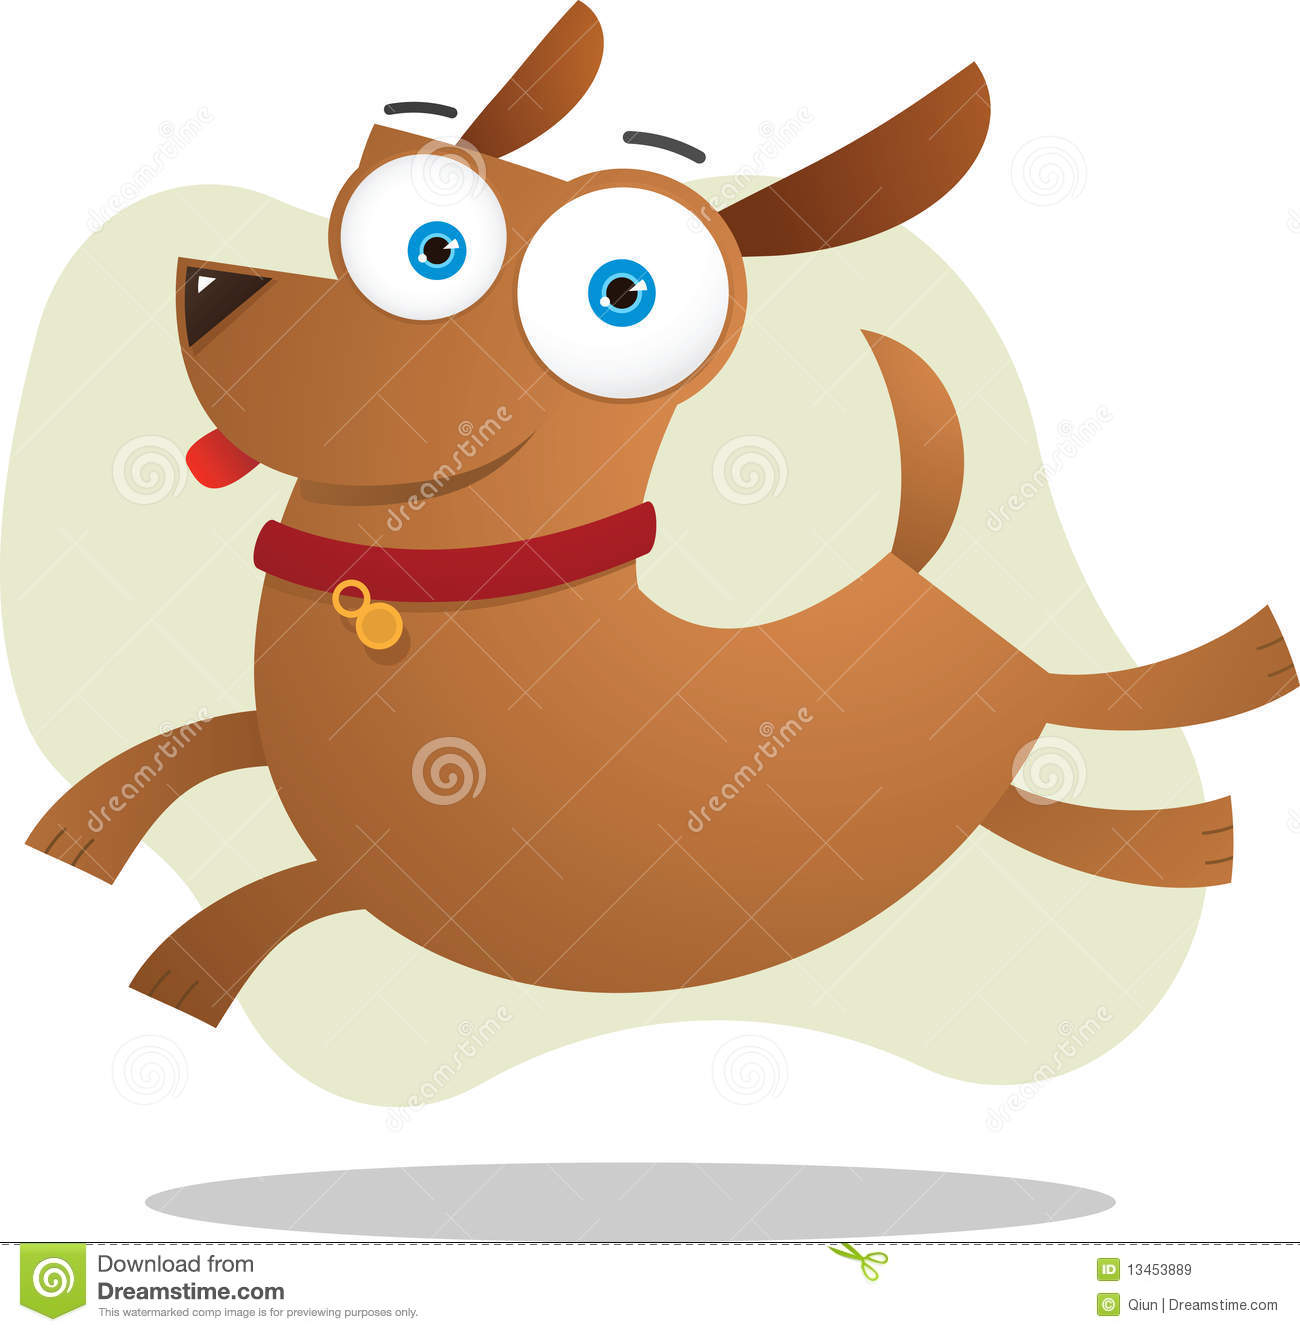 Real dog jumping clipart image library library Real dog jumping clipart - ClipartFest image library library